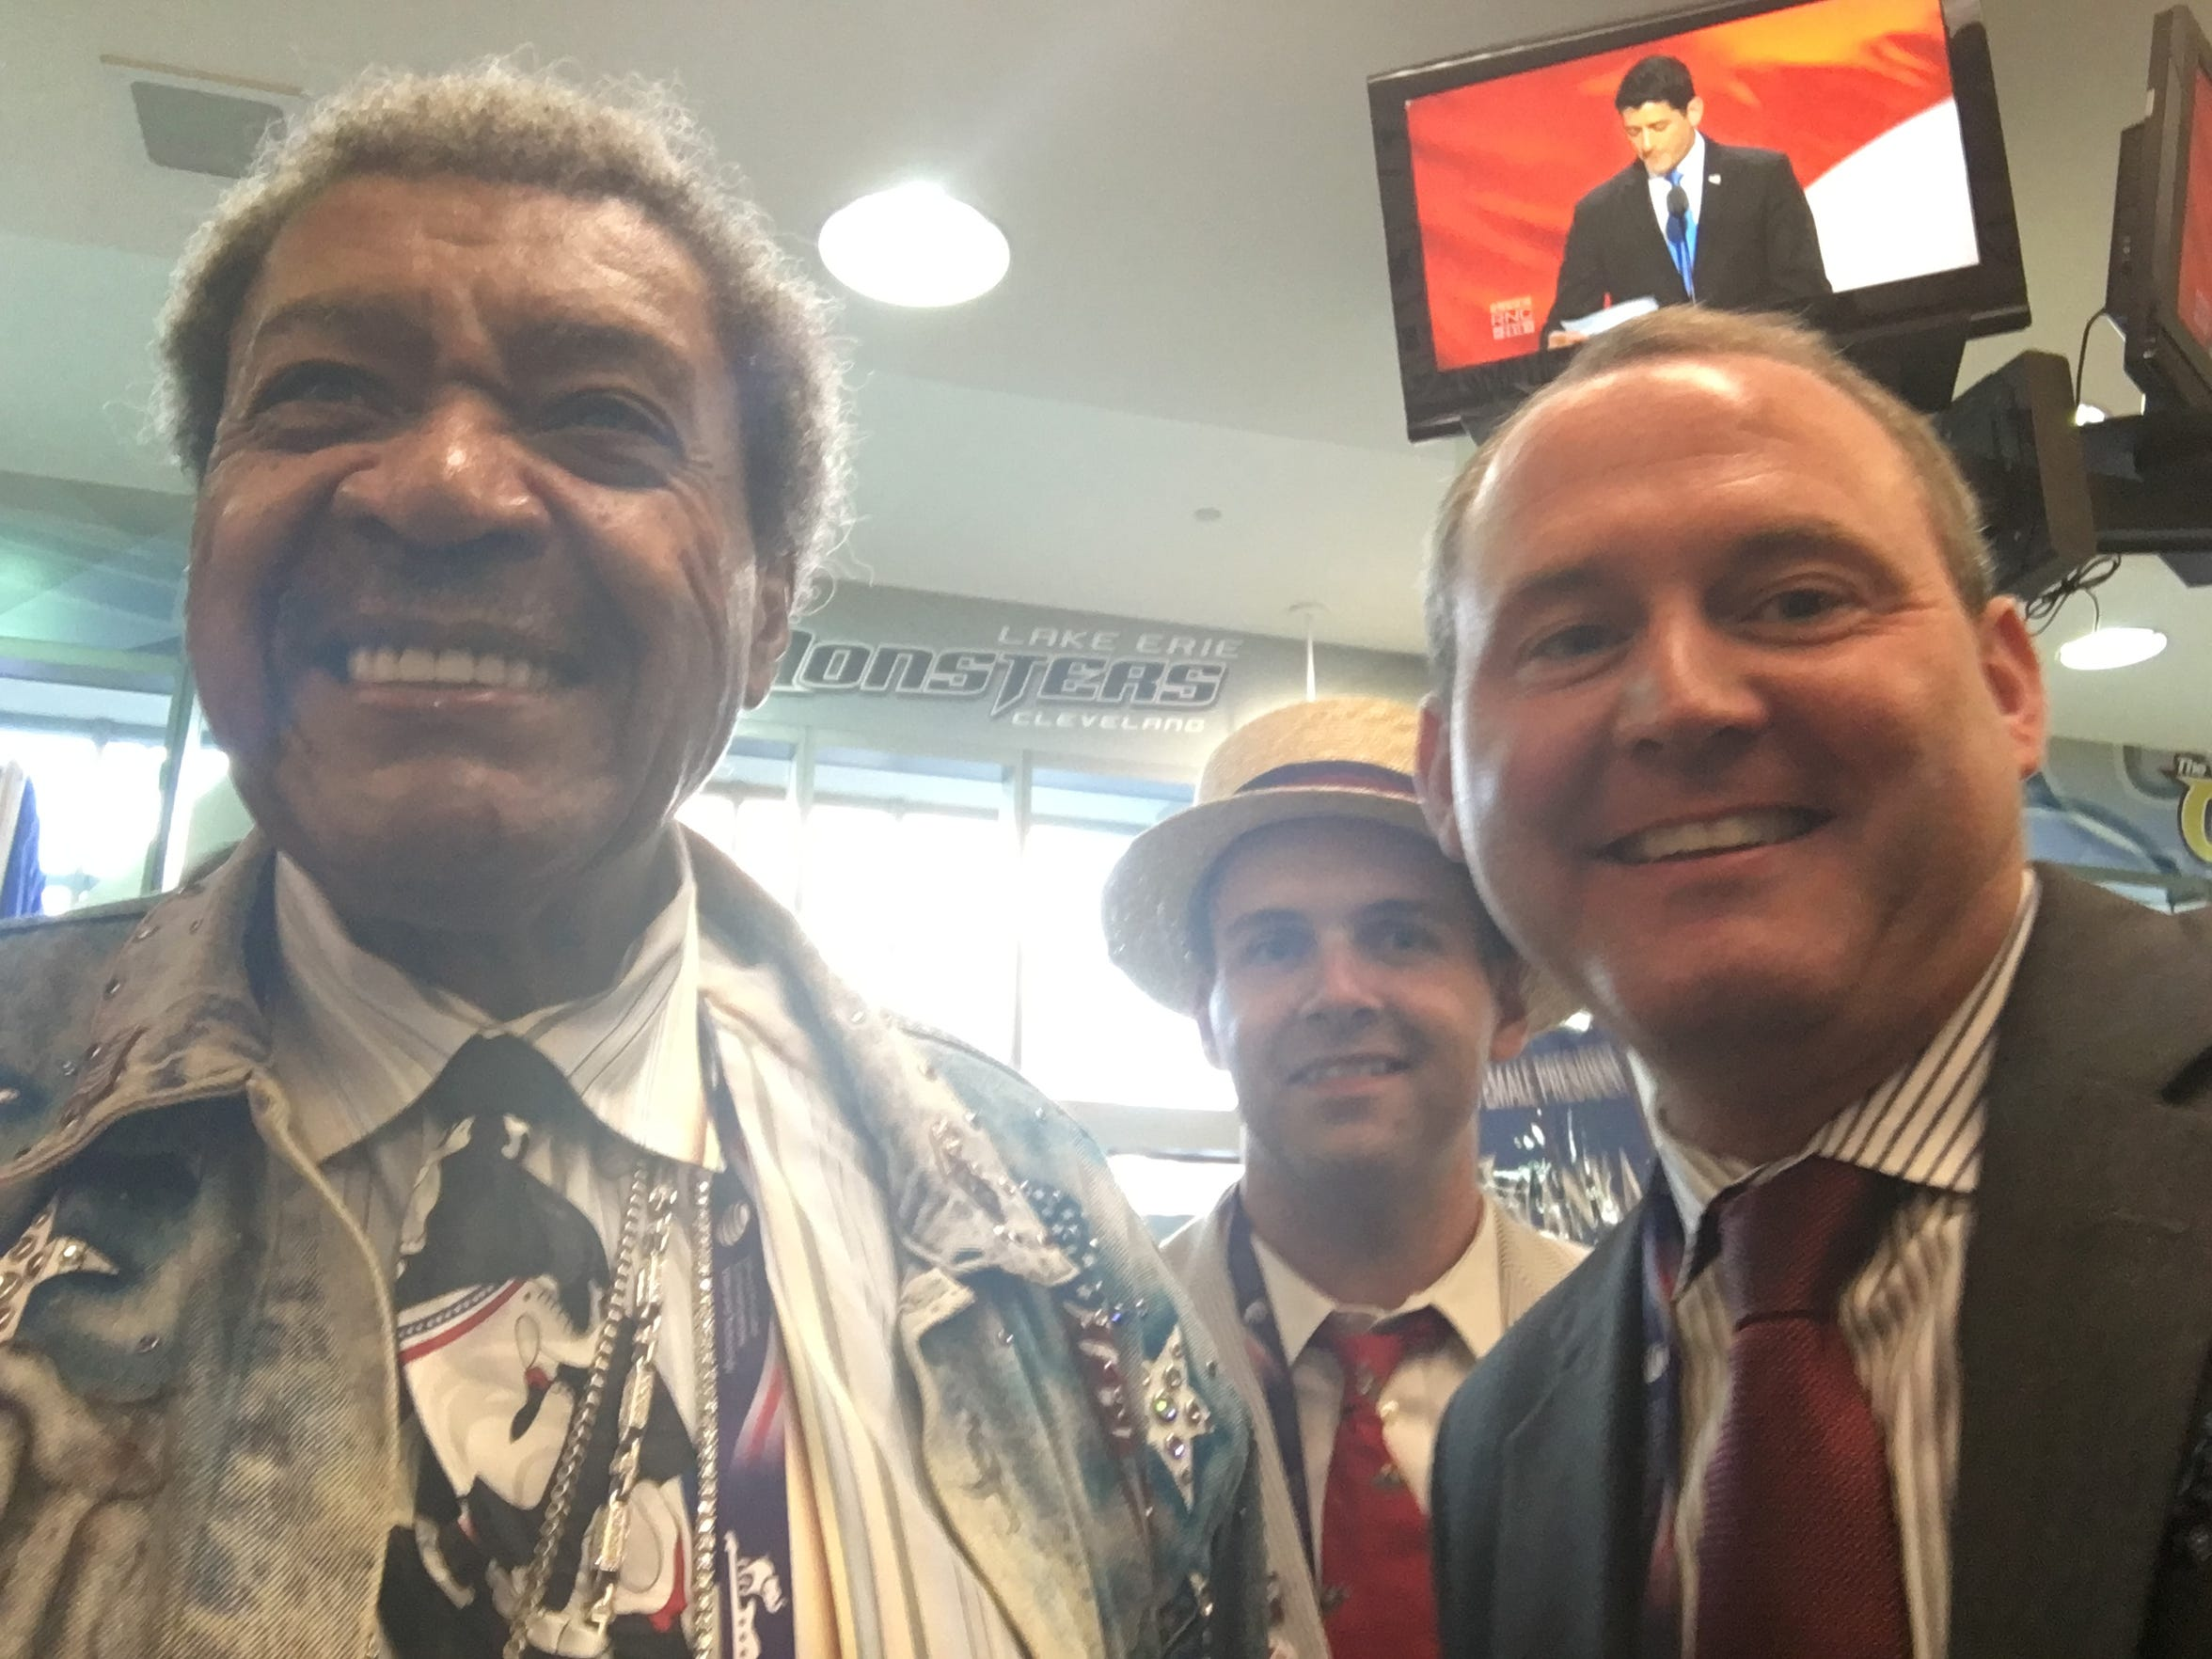 Posing with Don King